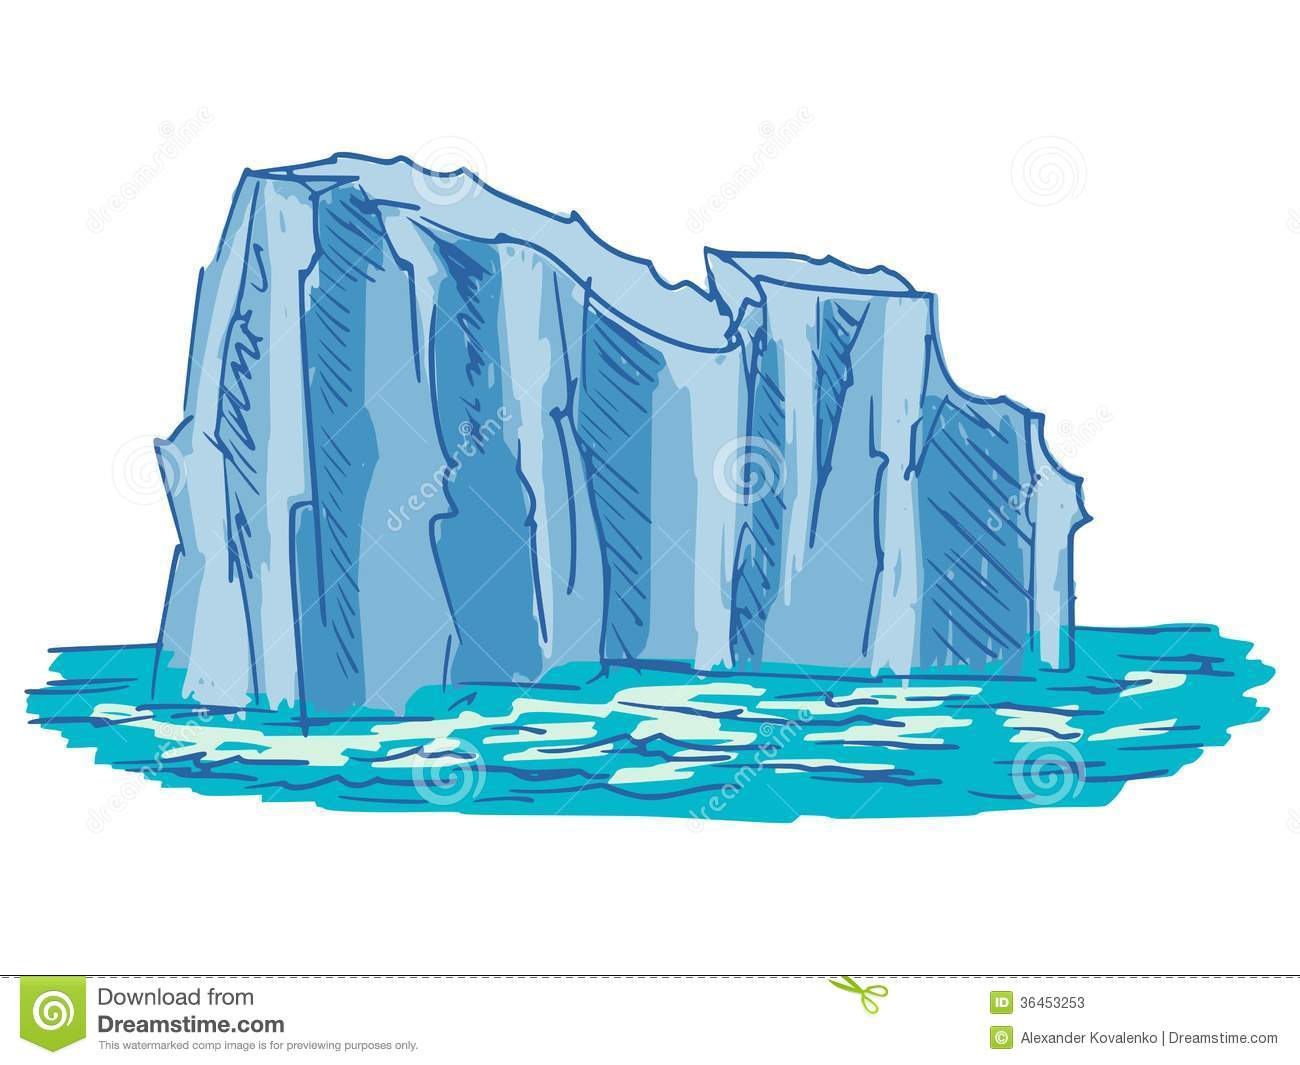 Hand drawn, cartoon, sketch illustration of iceberg.